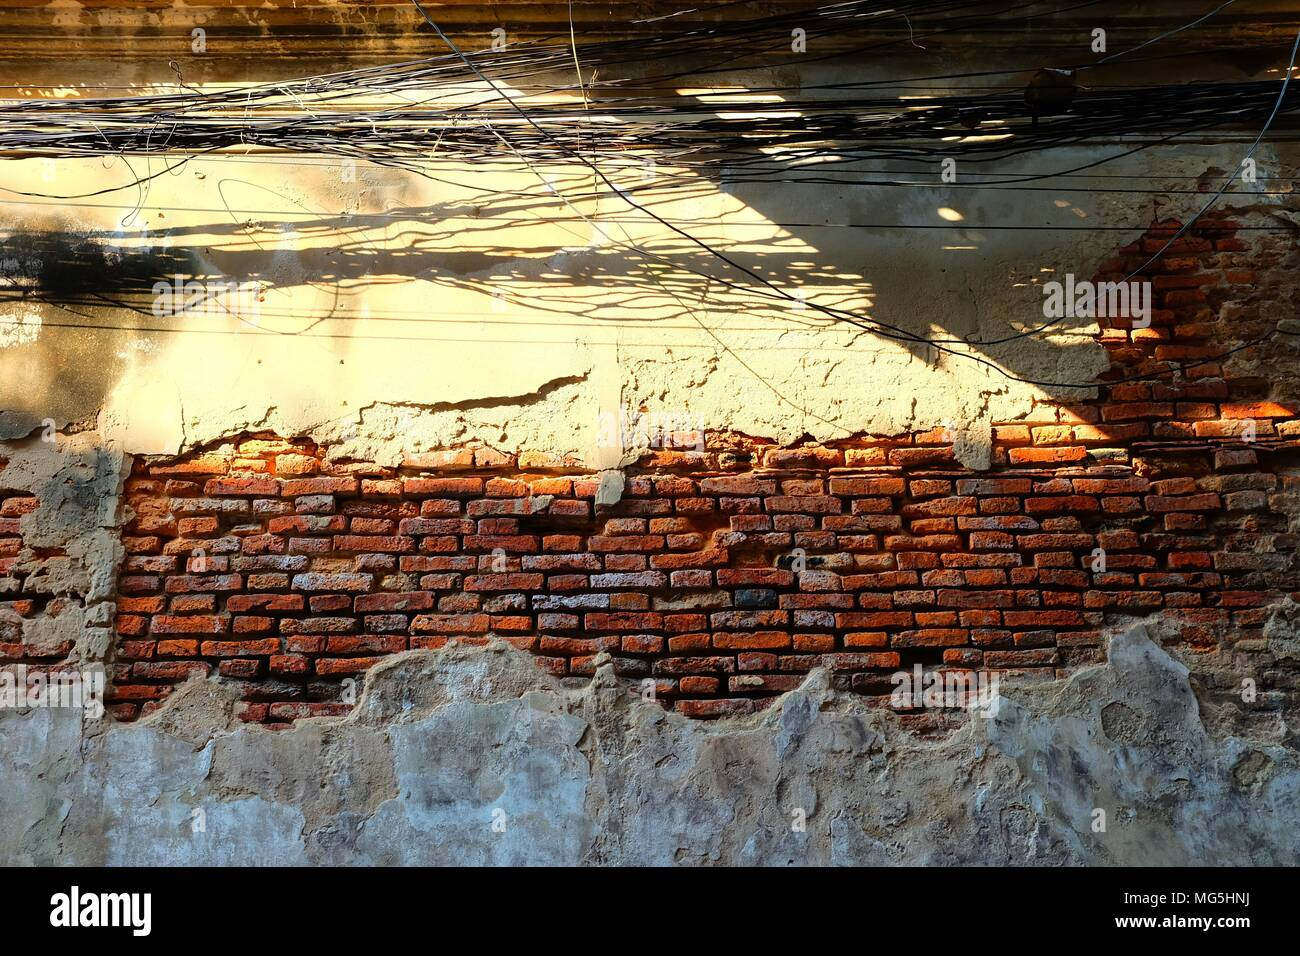 Wiring In Brick Wall Electrical Mess Stock Photos Messy Wires With Broken Old Image